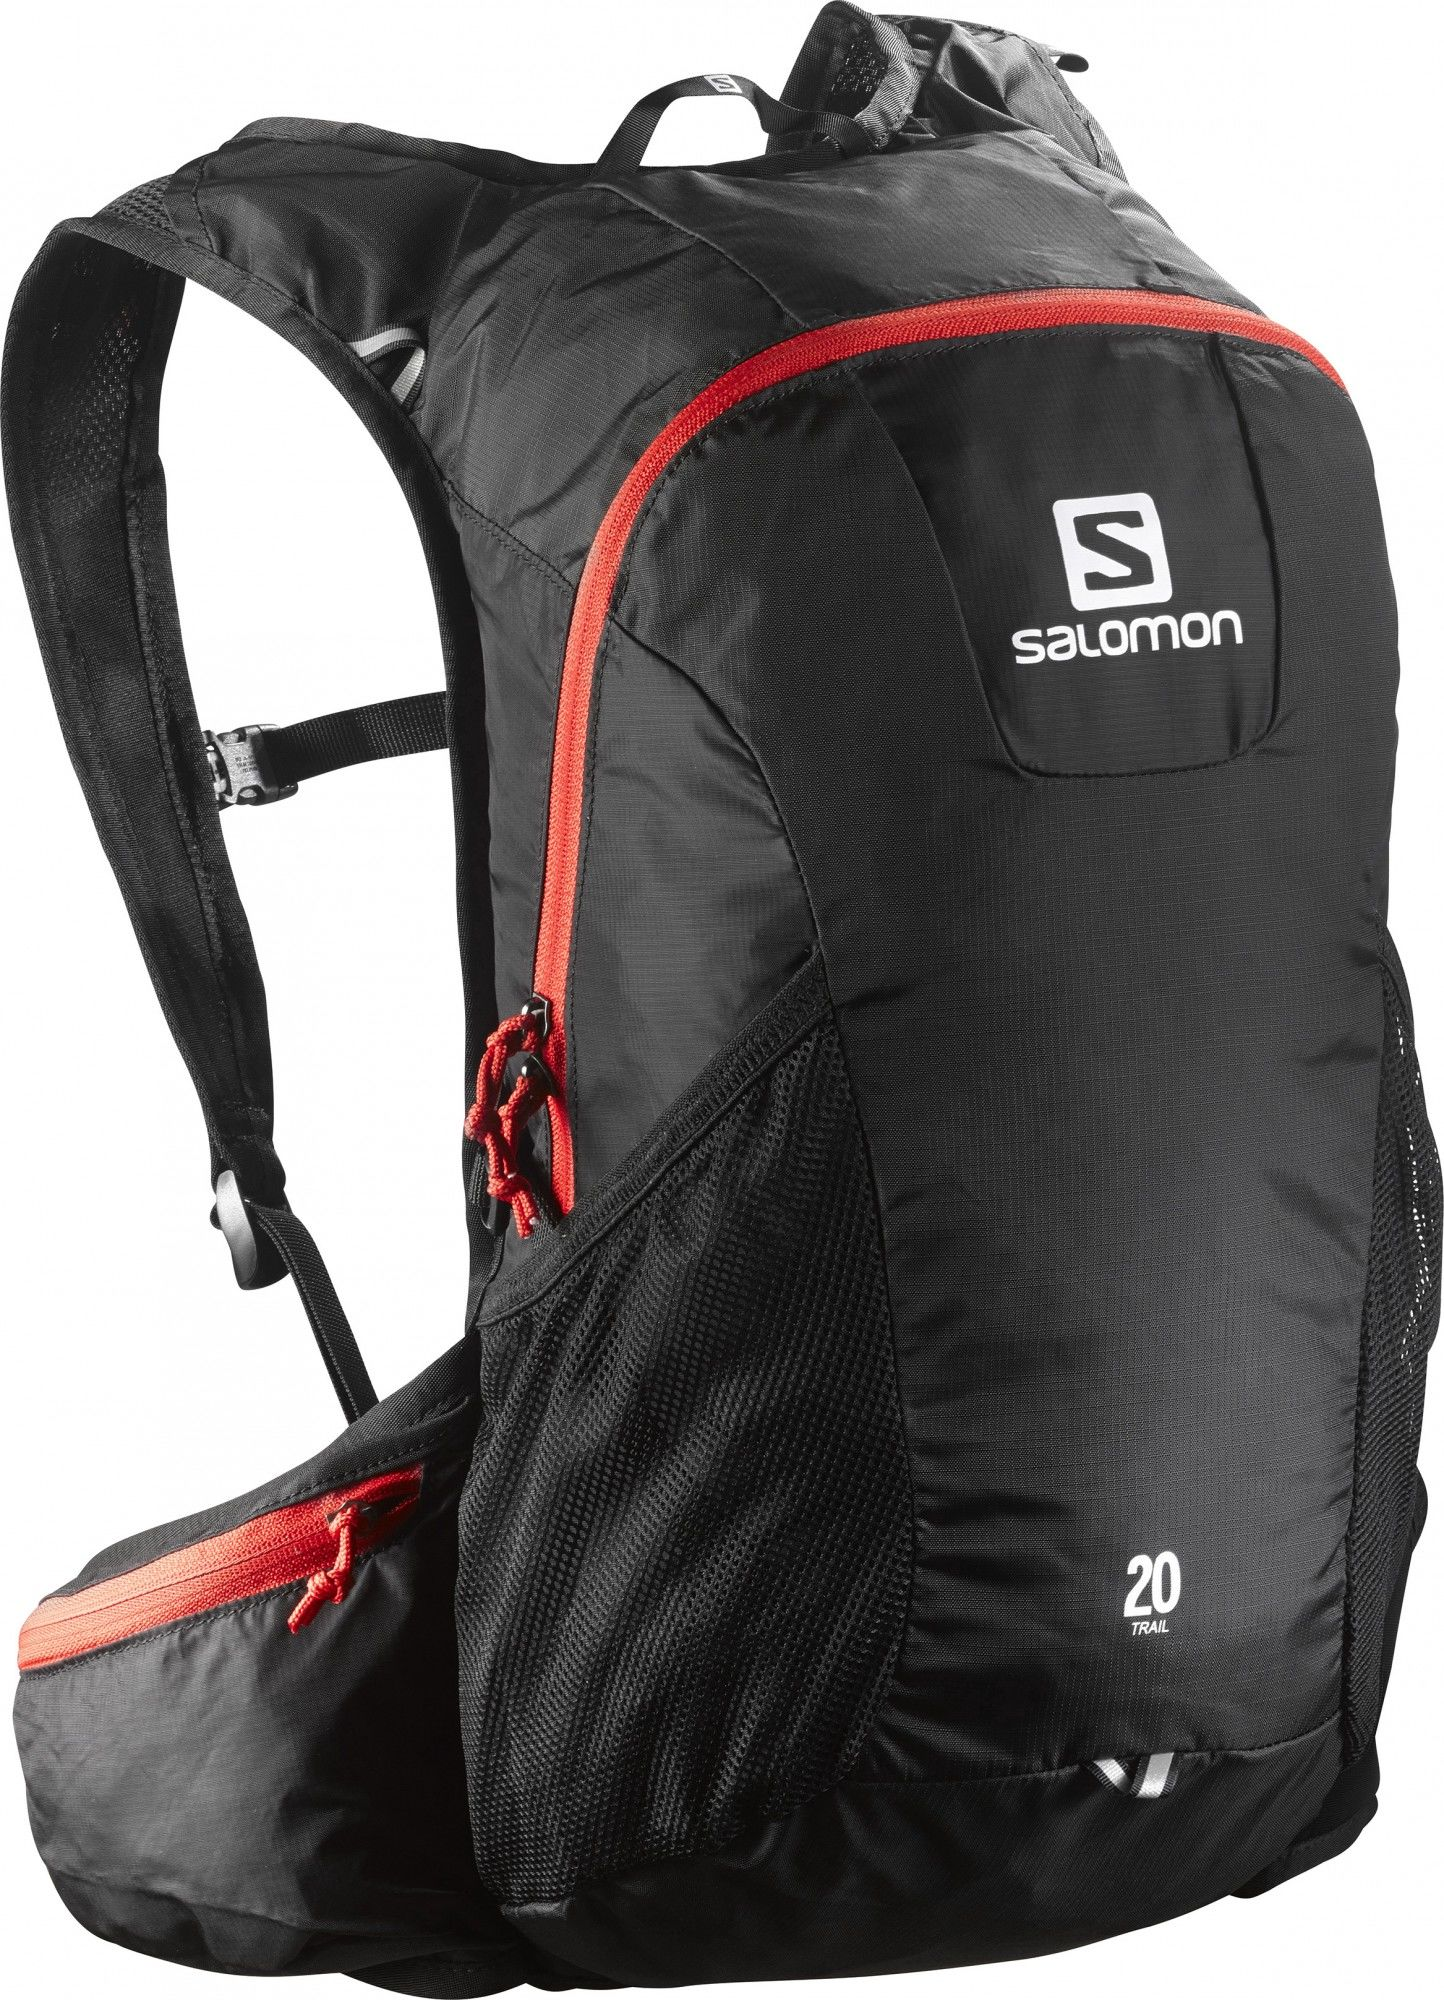 Salomon Trail 20 |  Alpin- & Trekkingrucksack